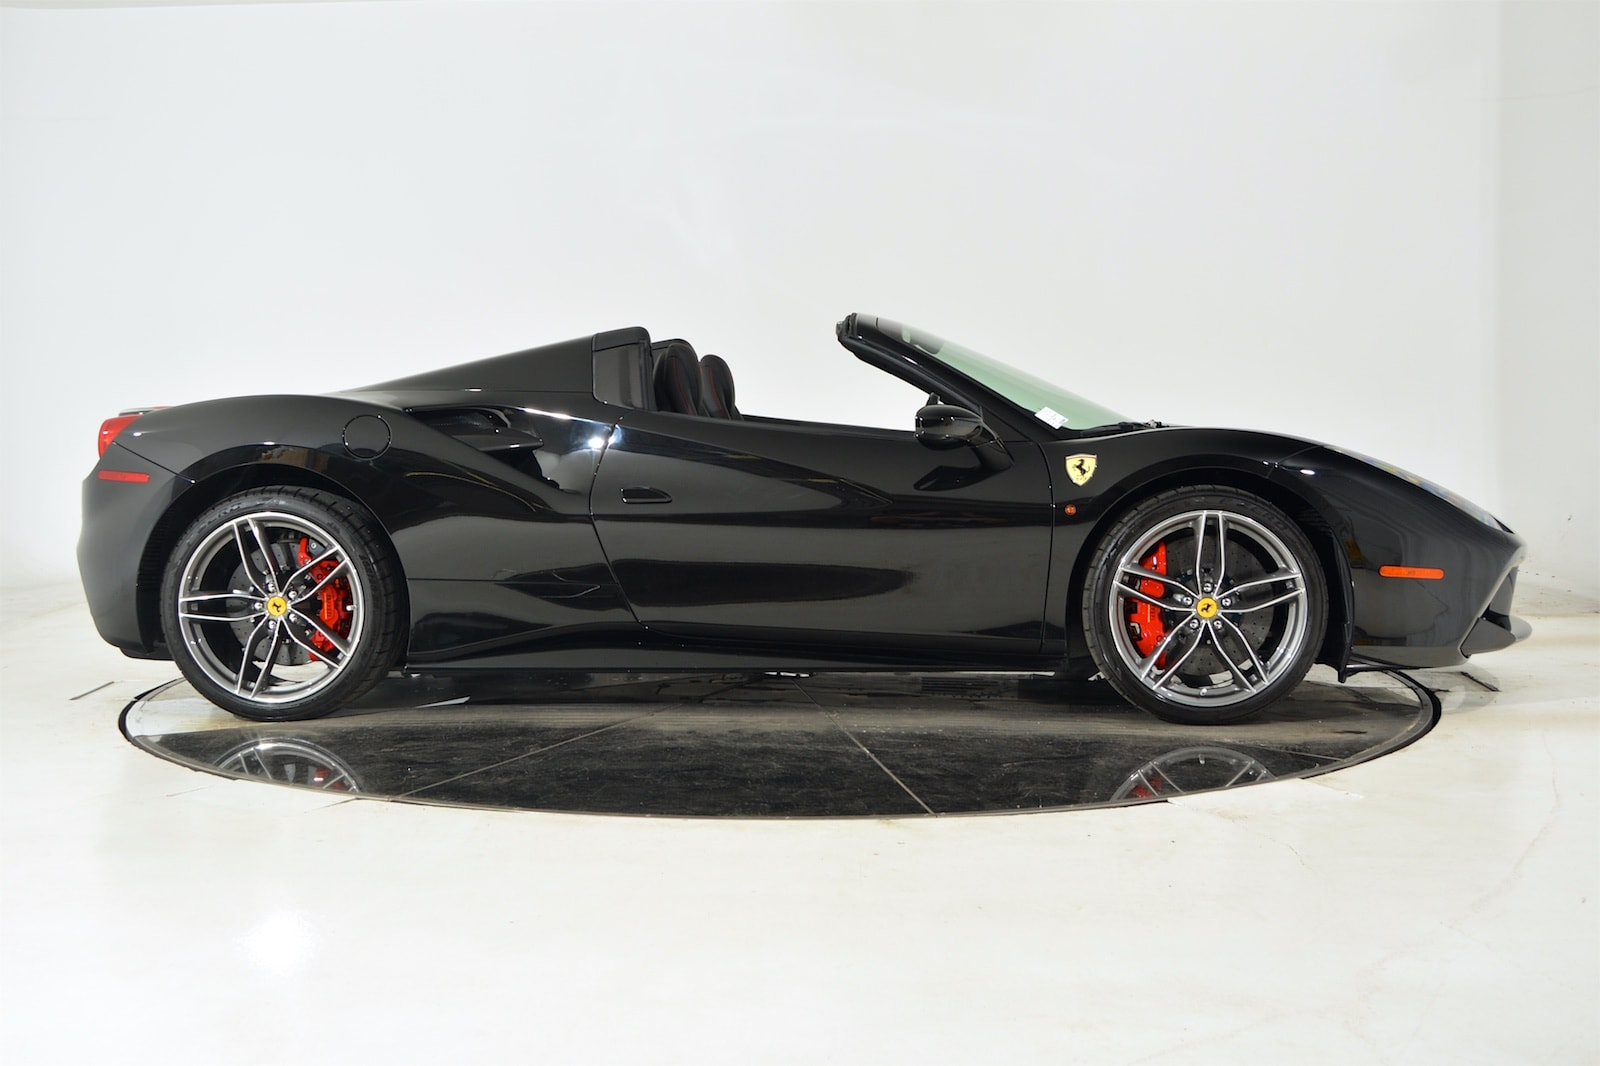 Used 2017 FERRARI 488 SPIDER in Black for Sale | Ferrari ...